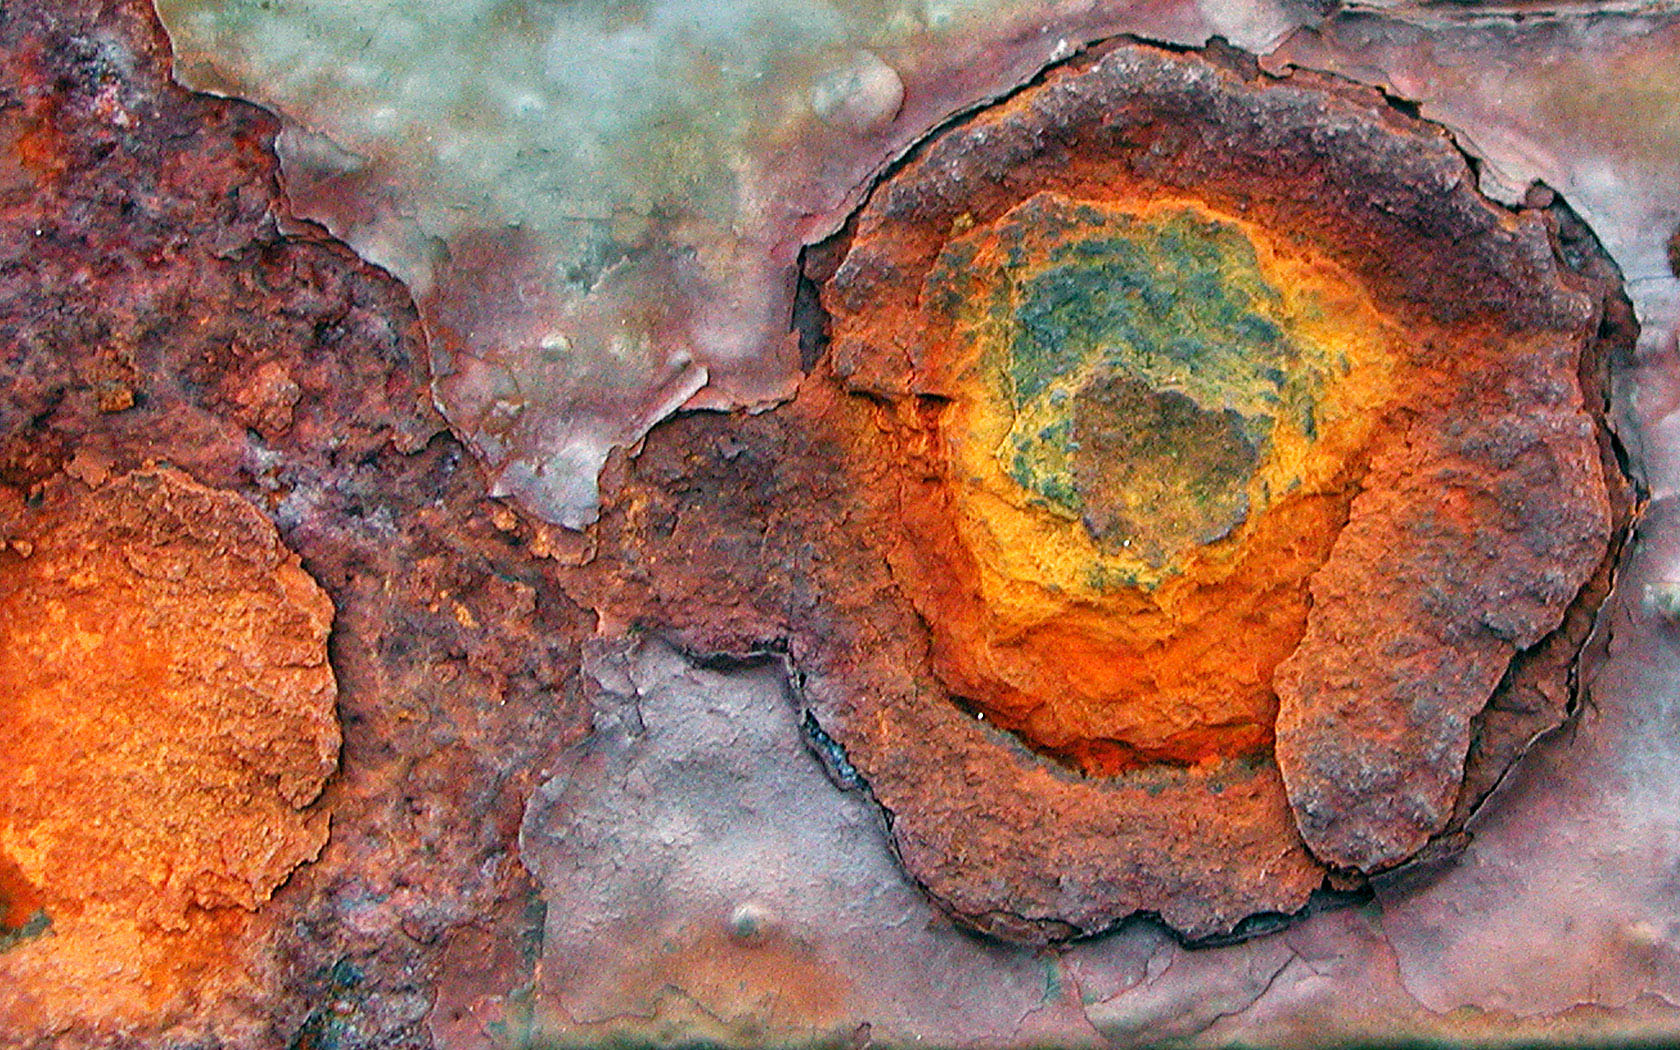 Rust on a ship hull. This process involving iron is called oxidation, when it's wood, we call it fire. Either way, oxygen is corroding the base material.